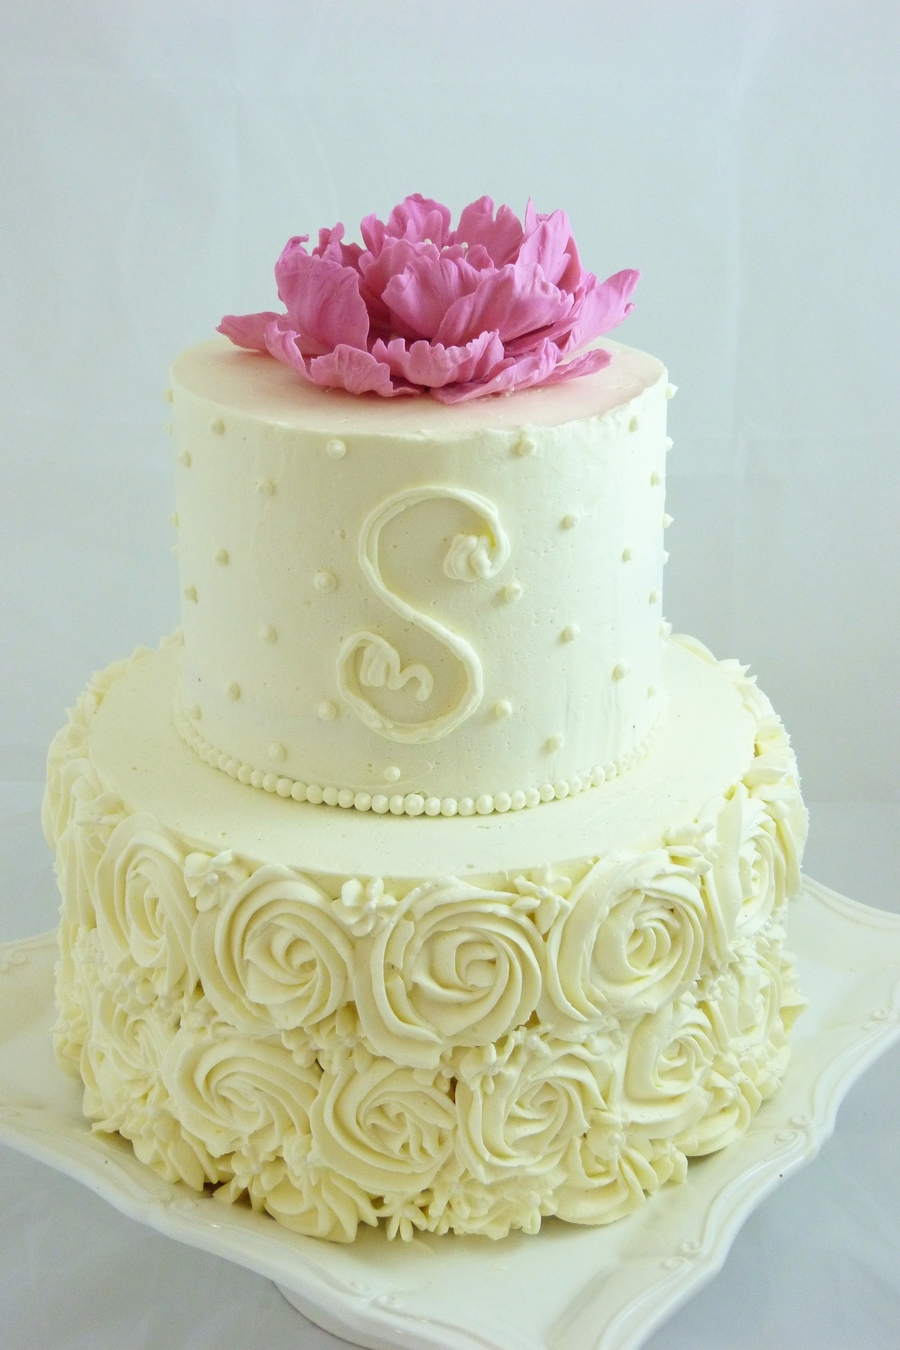 Buttercream decorated small wedding cake with piped roses dots and buttercream decorated small wedding cake with piped roses dots and a monogram handmade gum paste peony on top junglespirit Images